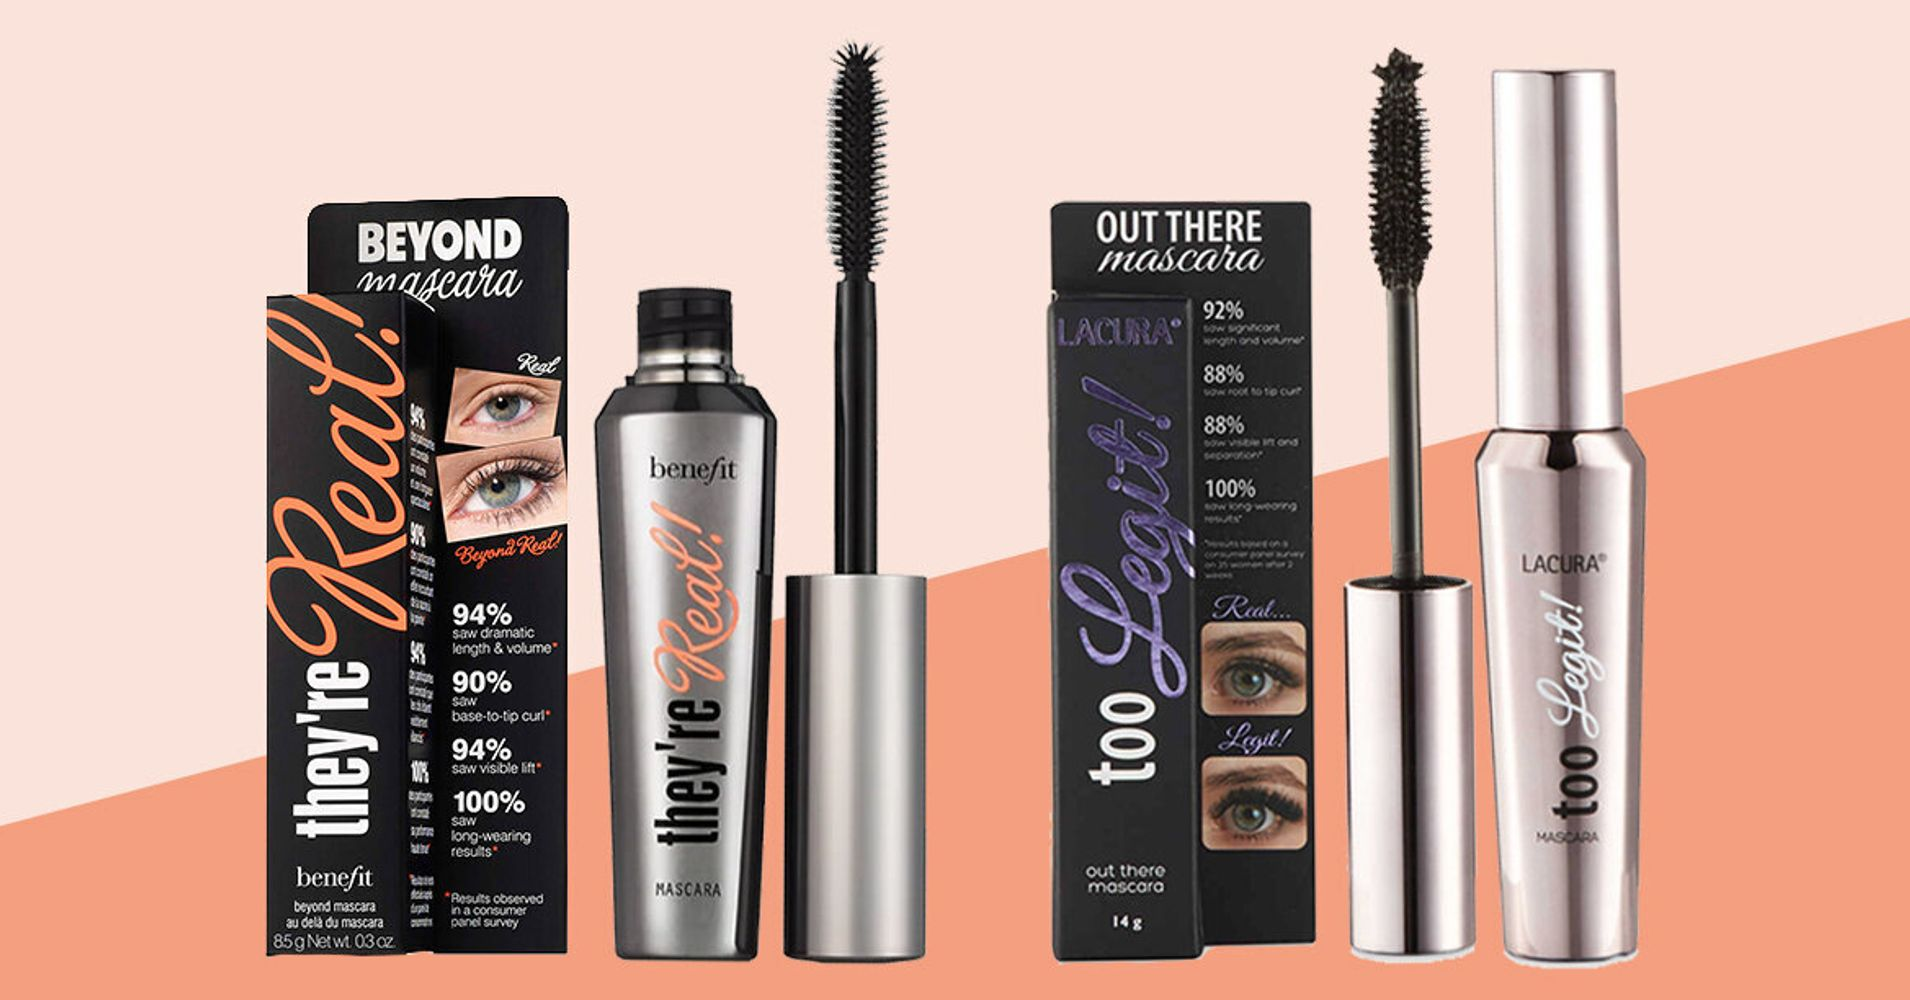 970d3c52d4a How Does Aldi's £6 'Too Legit' Dupe Compare To Benefit's £22 'They're Real'  Mascara?